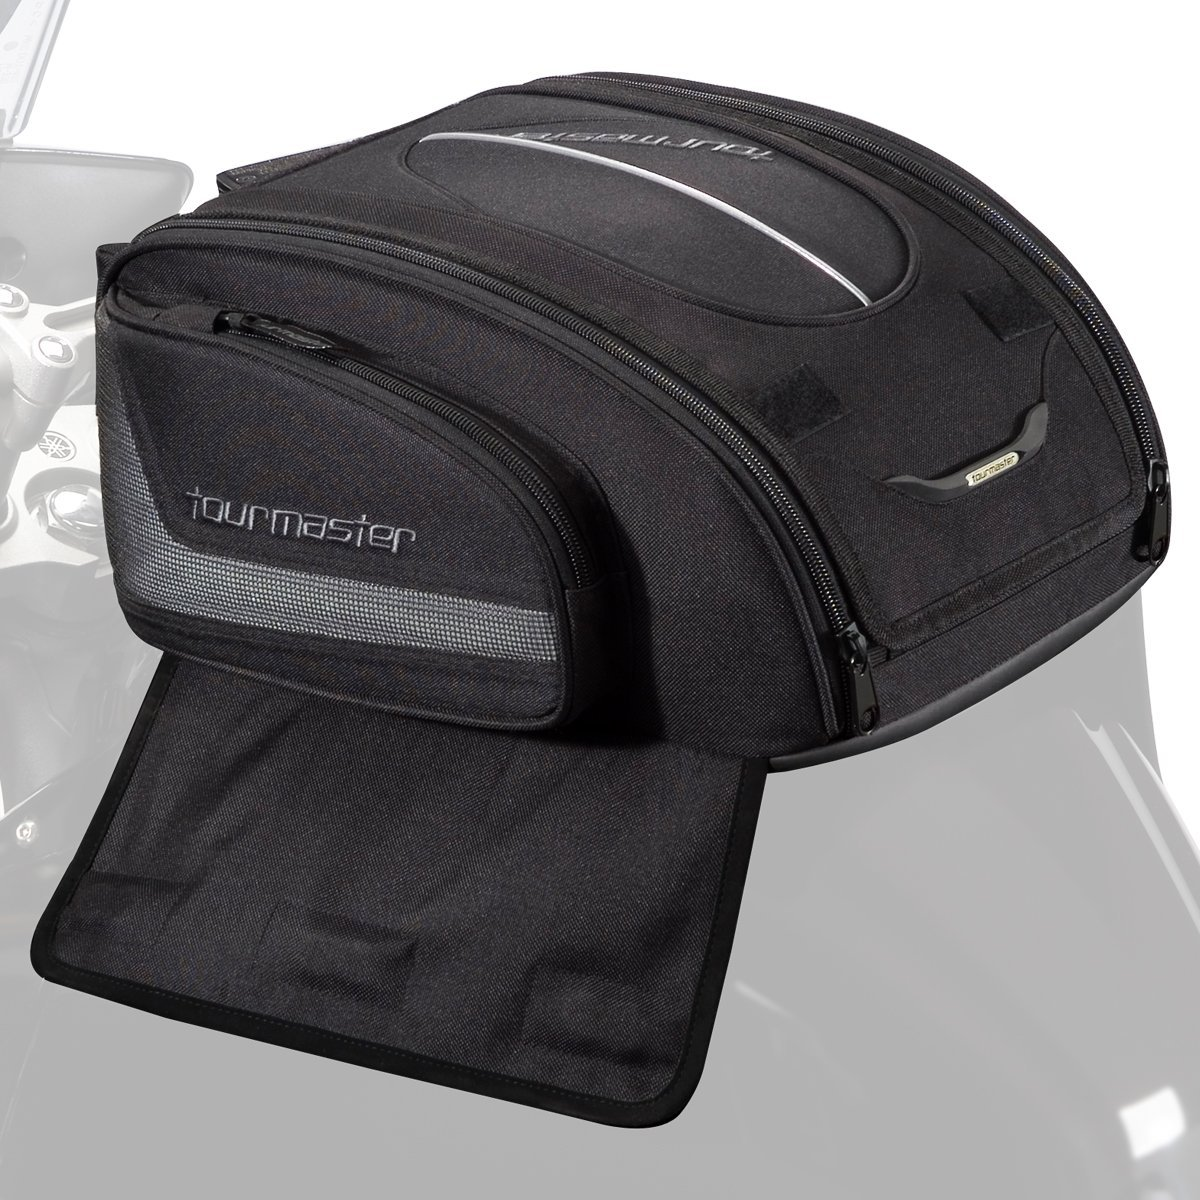 Tourmaster 8215-1305-04 Black Select Strap Mount Tank Bag